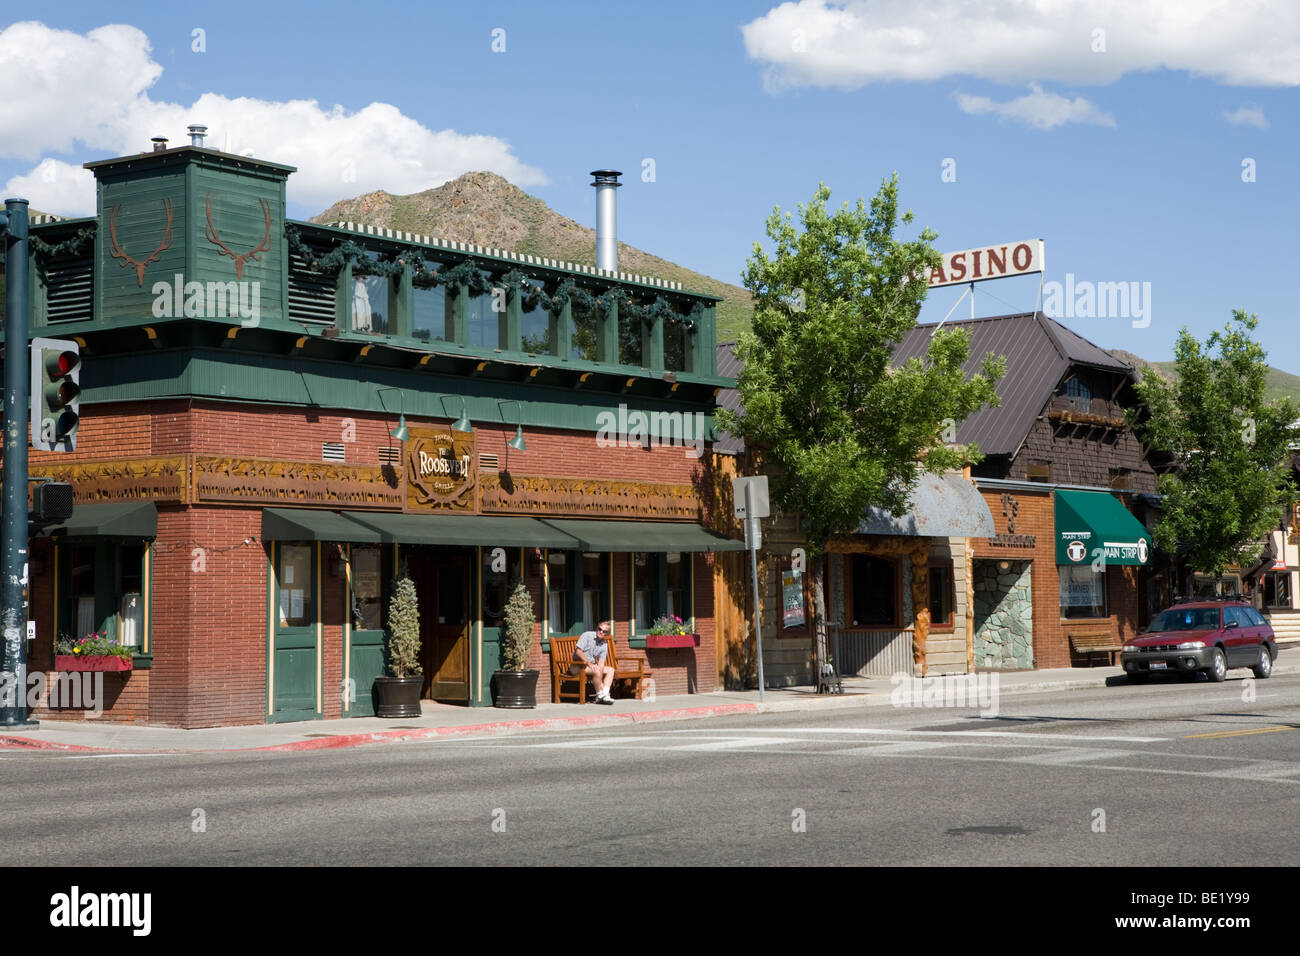 Business district of Sun Valley, Idaho - Stock Image